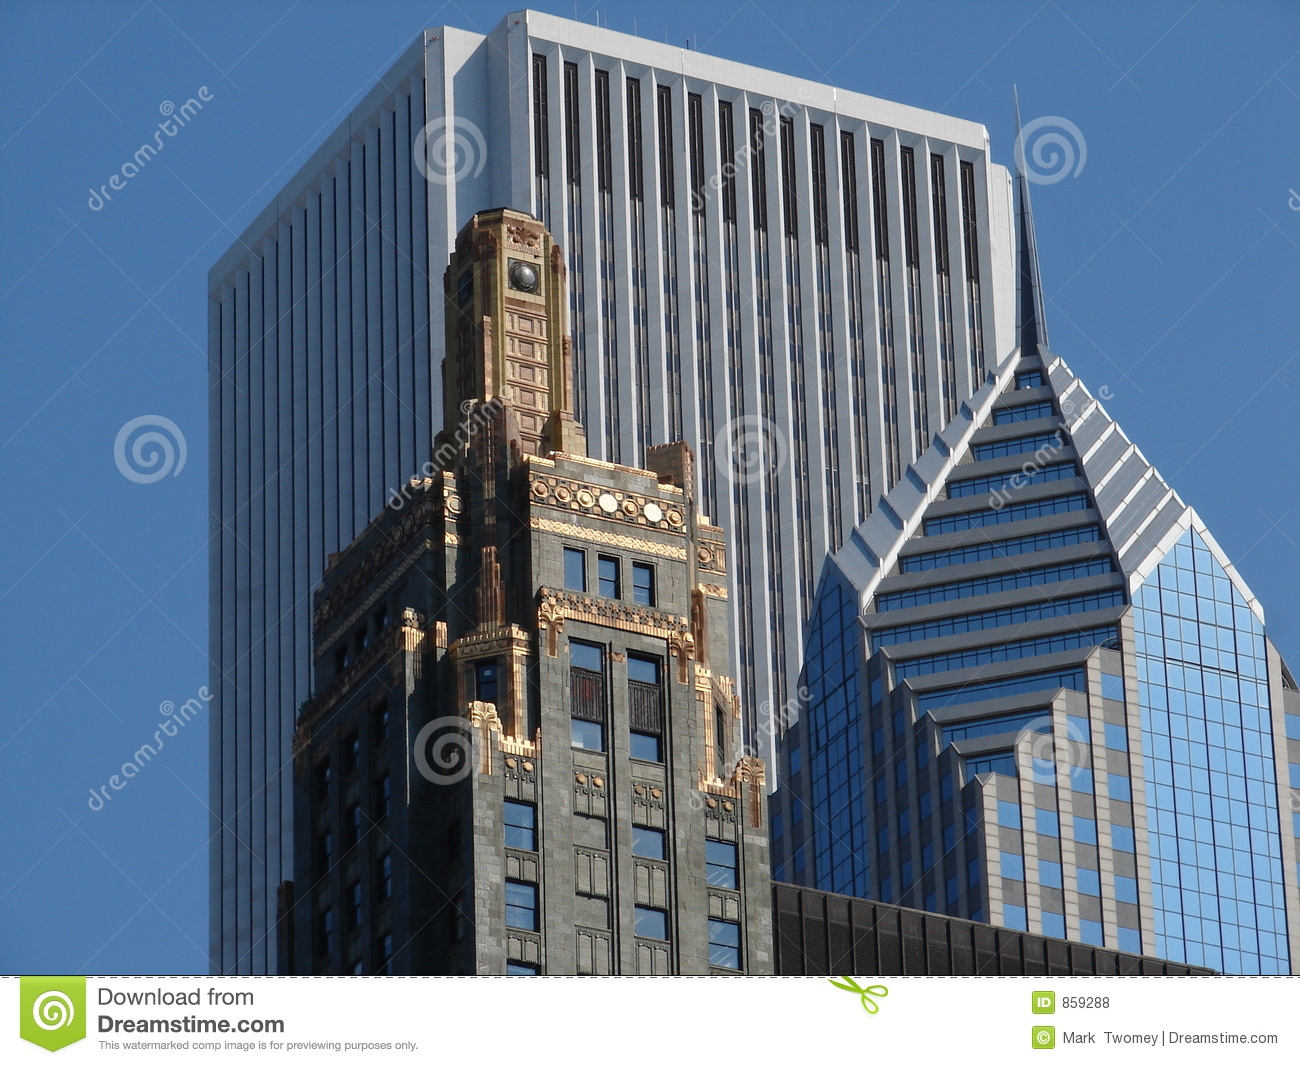 Royalty Free Stock Image Waste Paper Image23841746 as well 913979 additionally Royalty Free Stock Photos Chicago Architecture Trio Aon Center Carbide Carbon Building Two Prudential Plaza Image859288 as well Photo Gallery together with Building Hyperdensity And Civic Delight. on business office floor plans